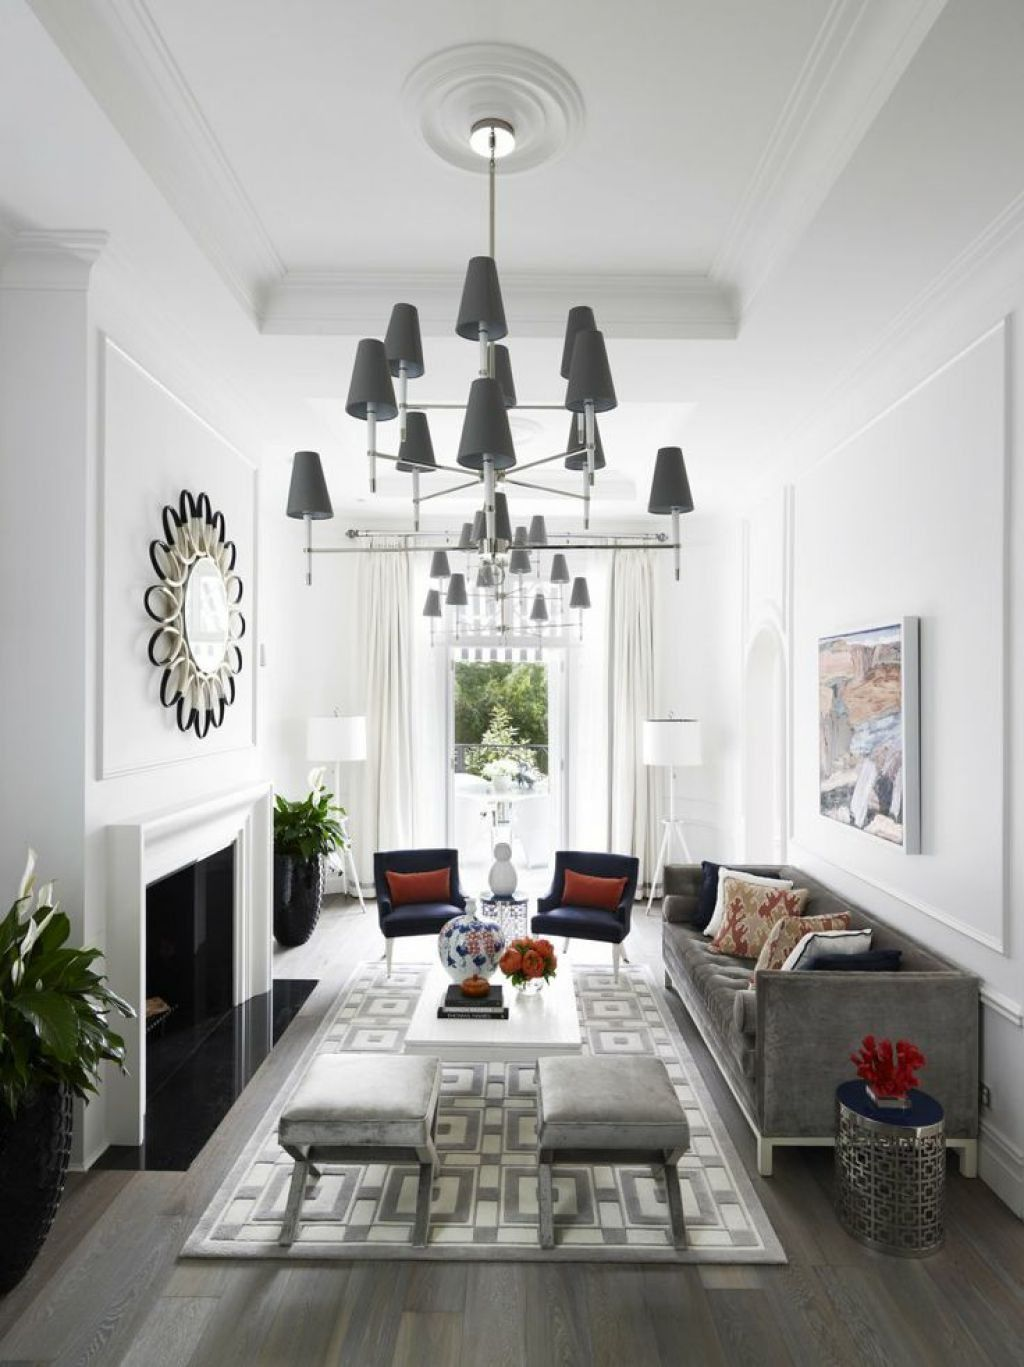 Long Narrow Room Design: Ways To Decorating A Narrow Living Room In 2019